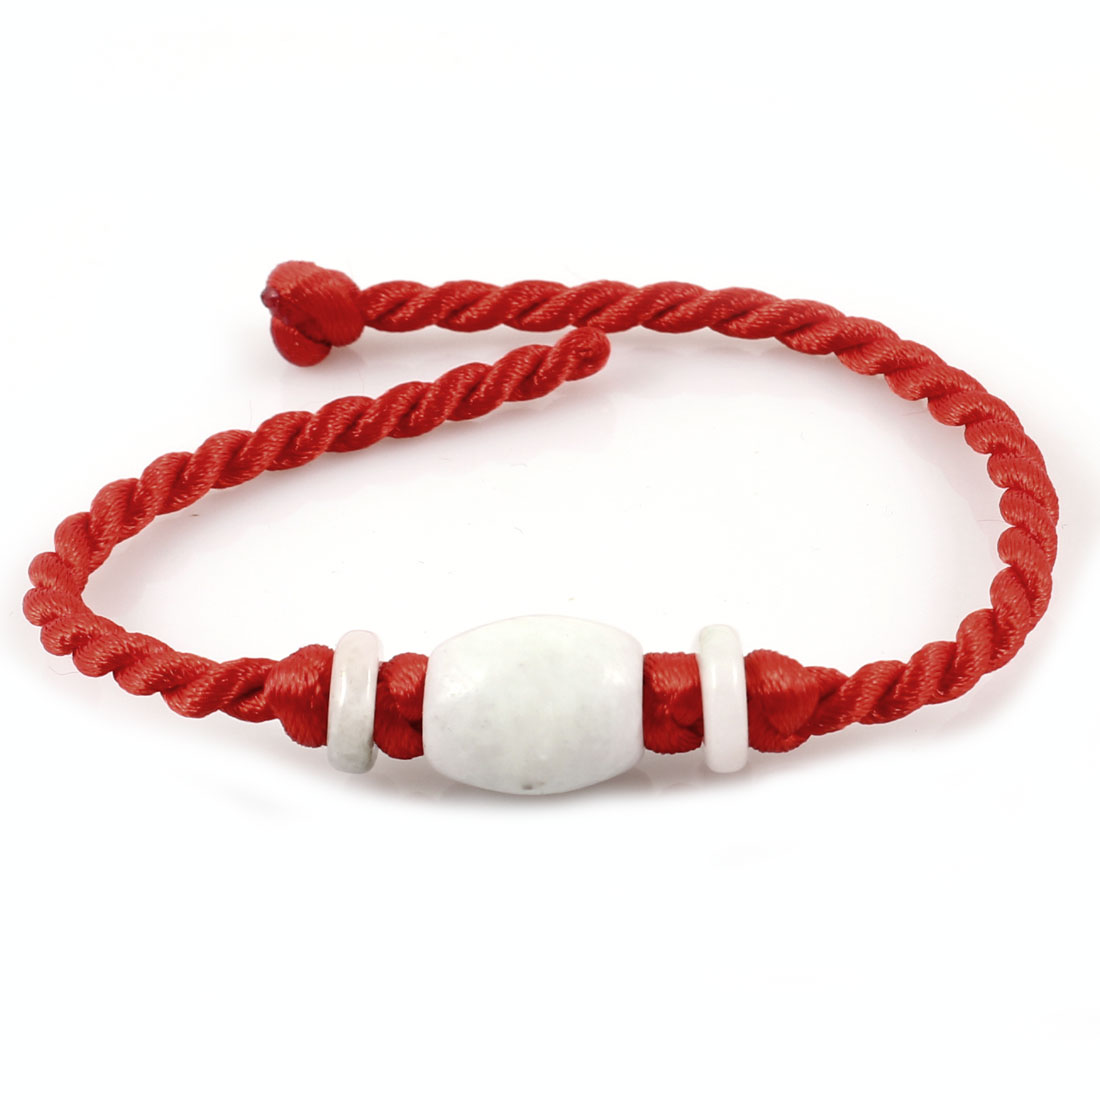 Plastic Beads Decor Handcrafted String Lucky Wristlet Bracelet Red for Lady